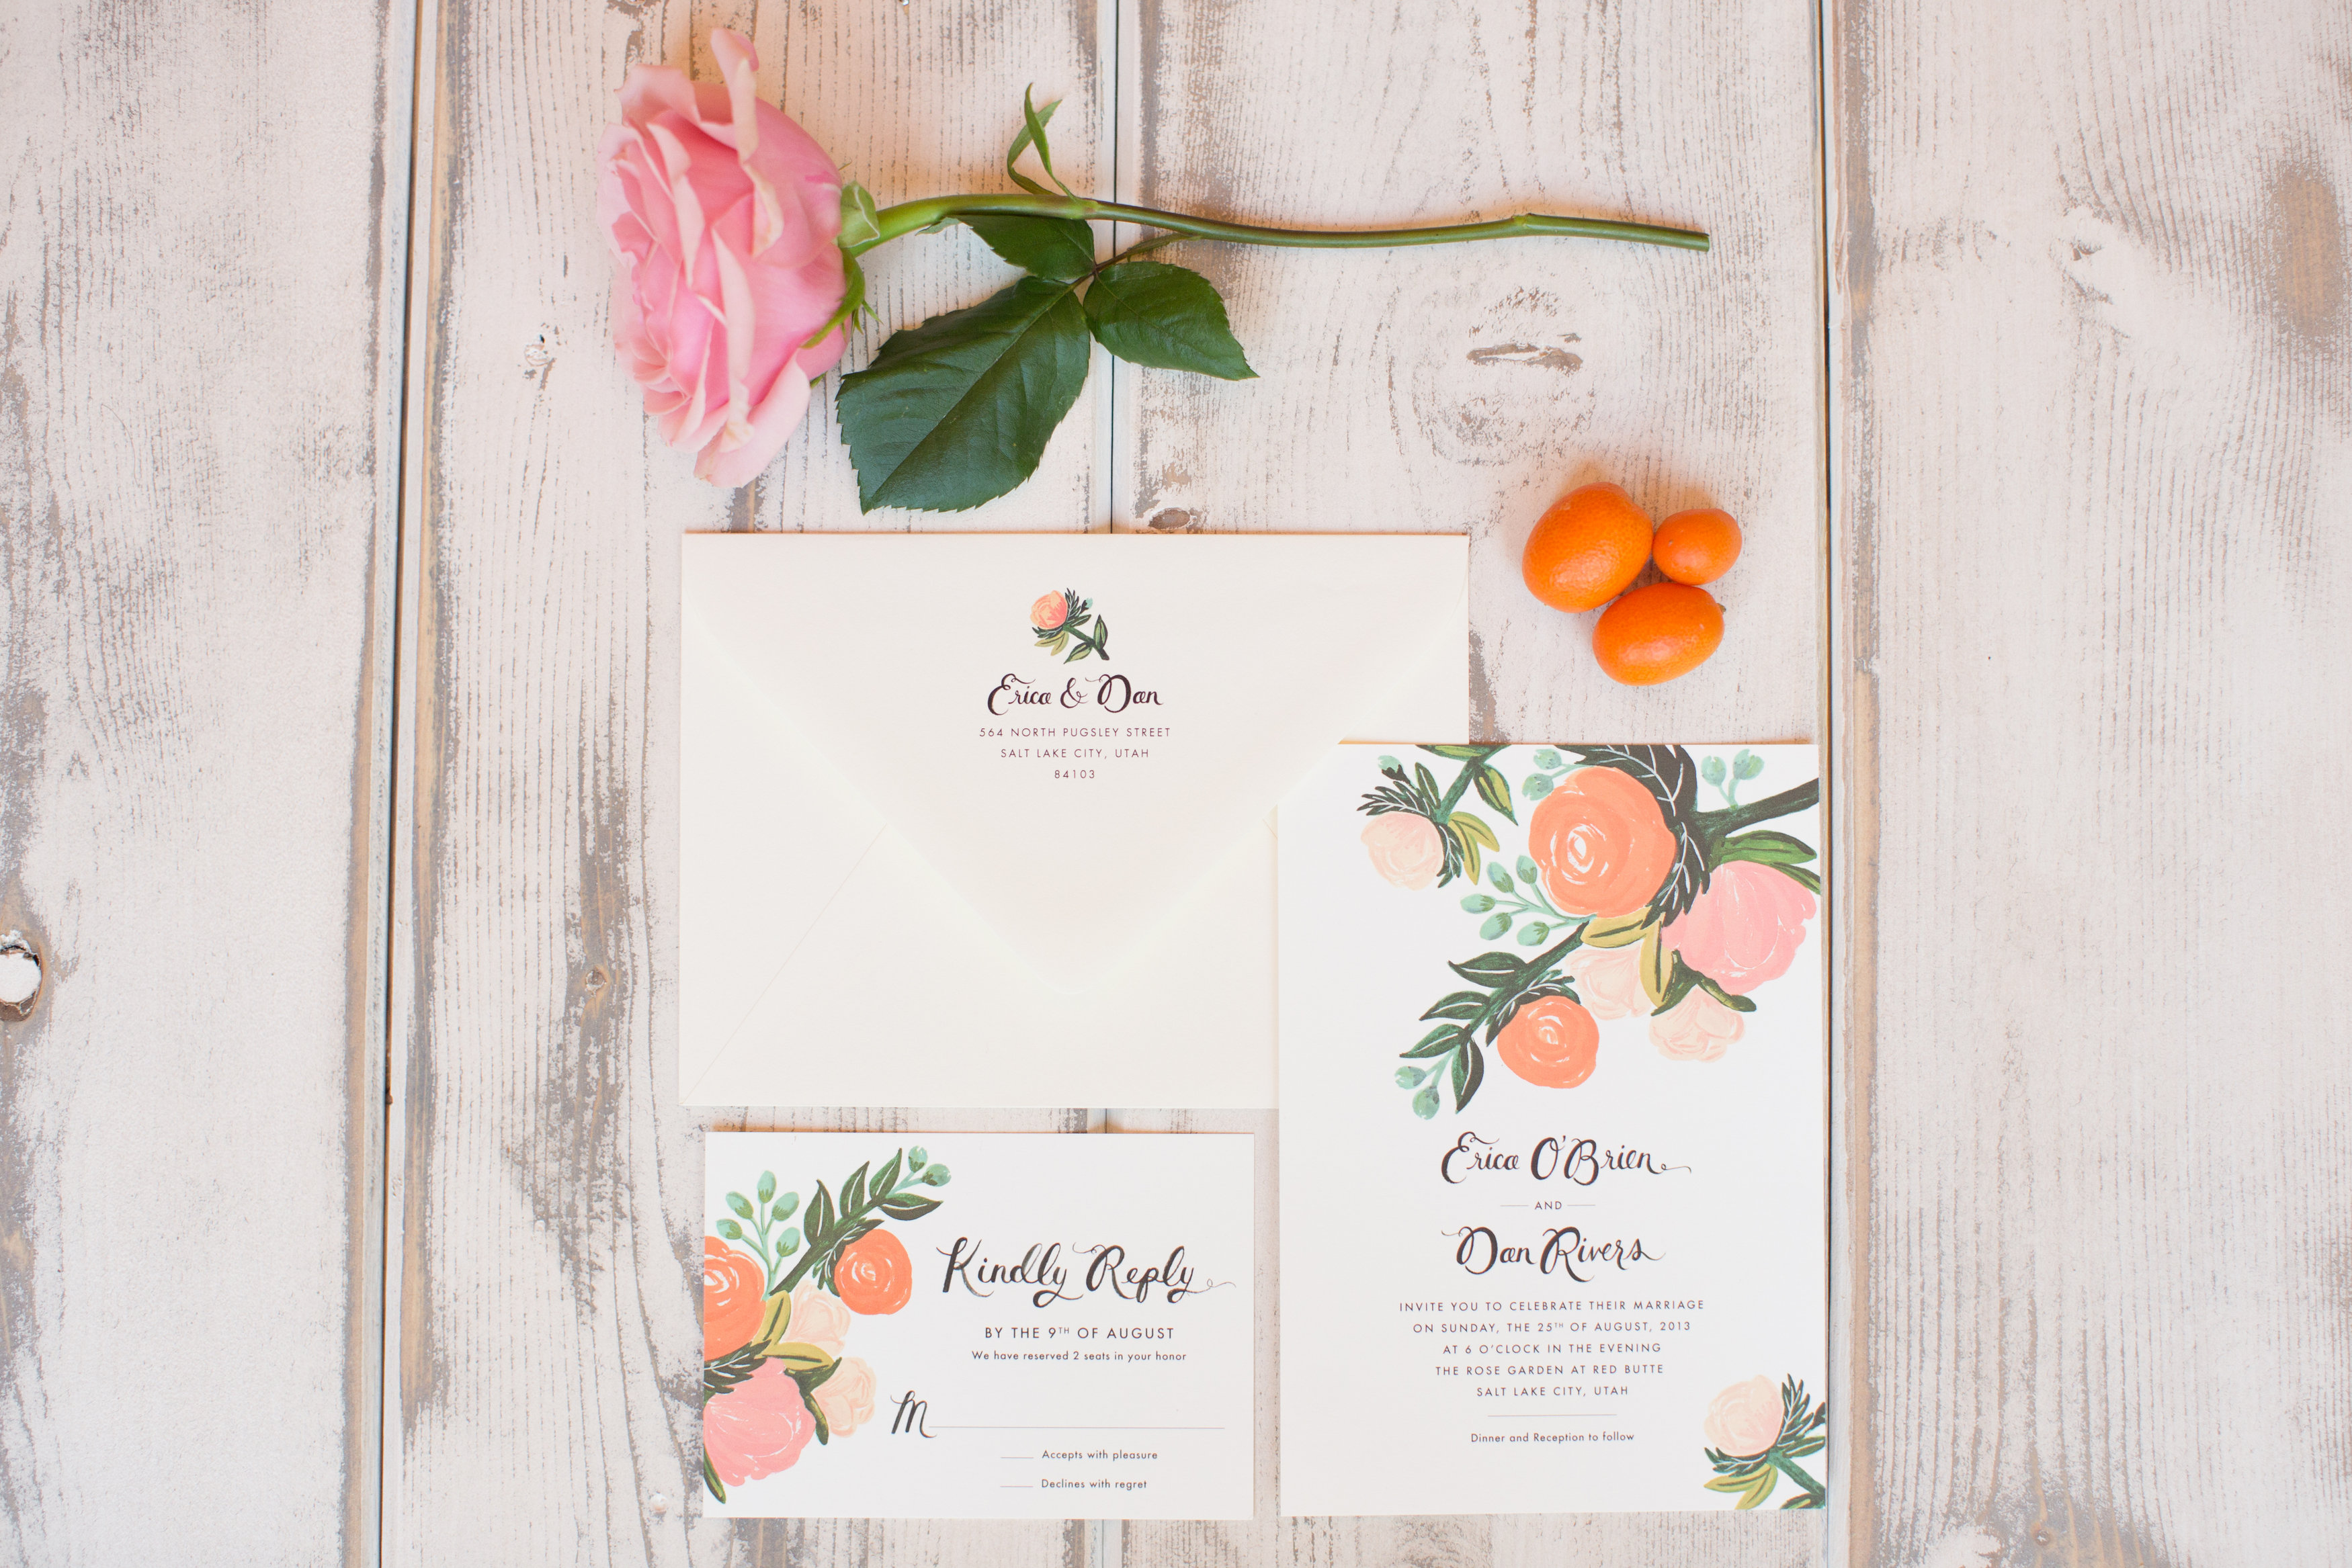 Sweet Citrus Wedding - Imoni Events